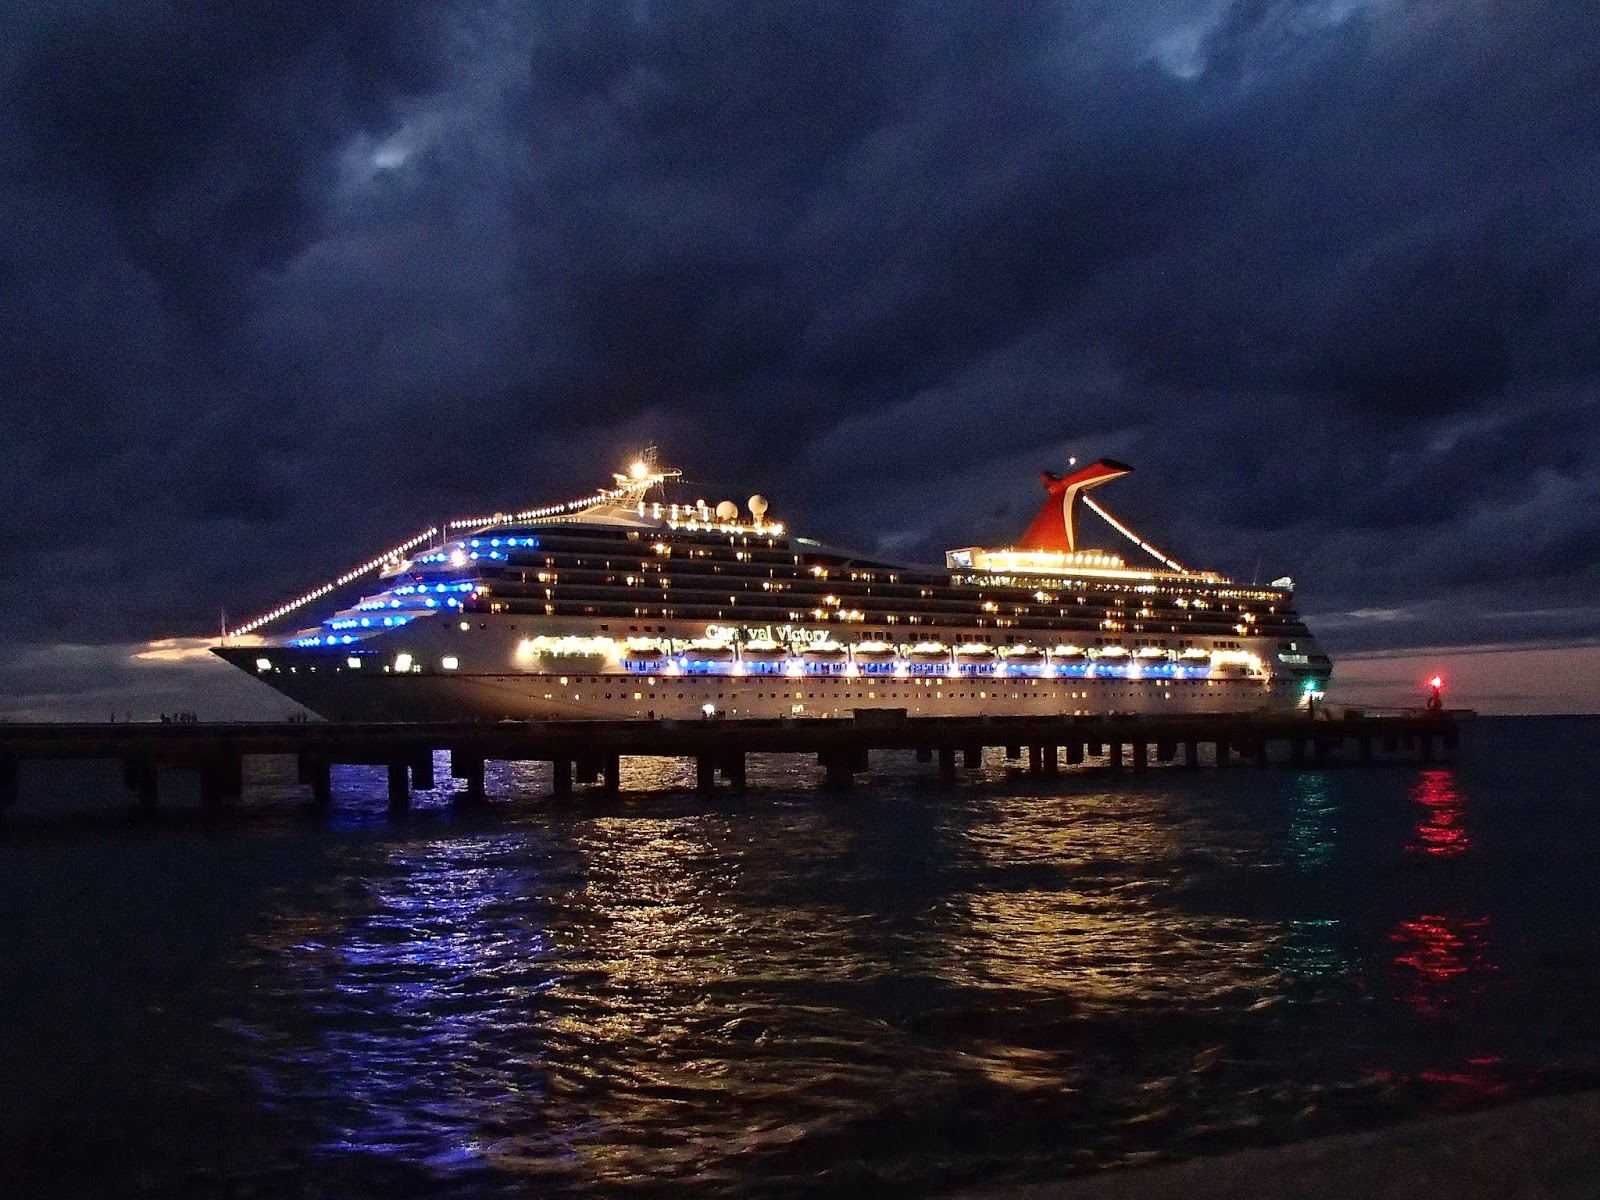 Carnival Victory at night